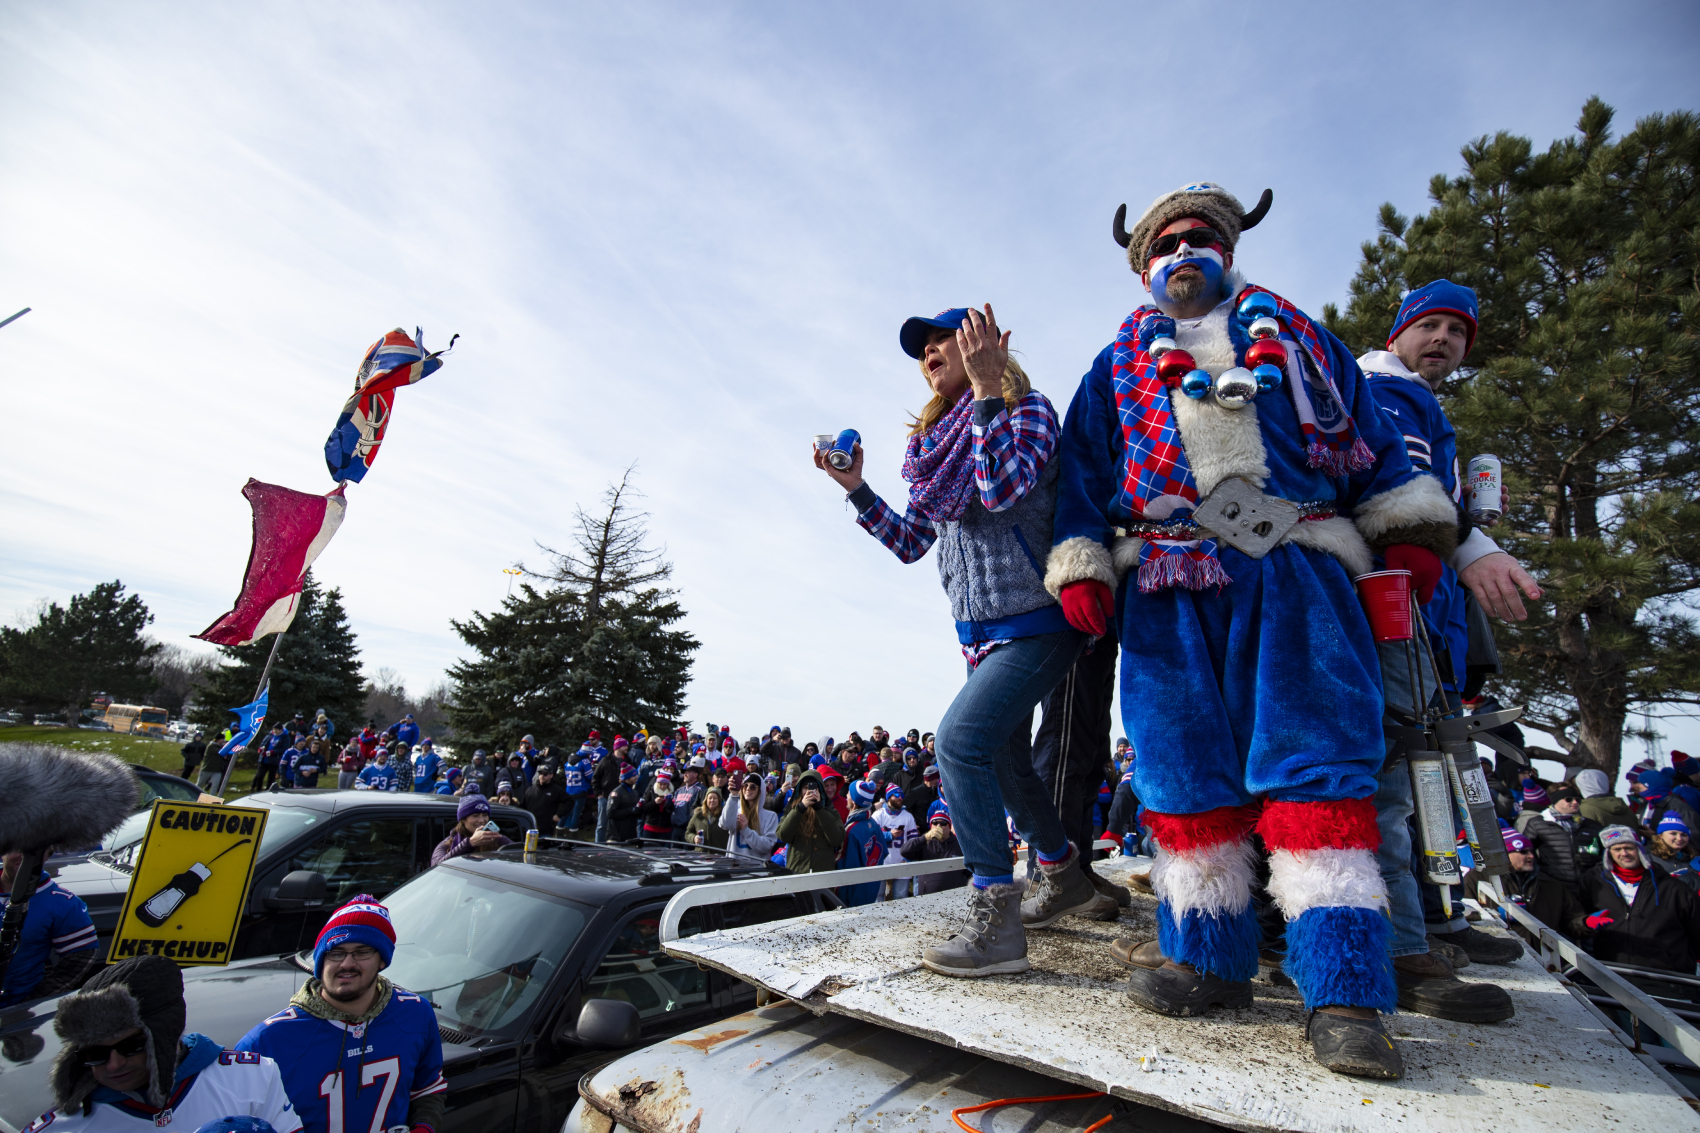 The Buffalo Bills may not be allowed to have tailgates in 2019 because of the coronavirus pandemic.